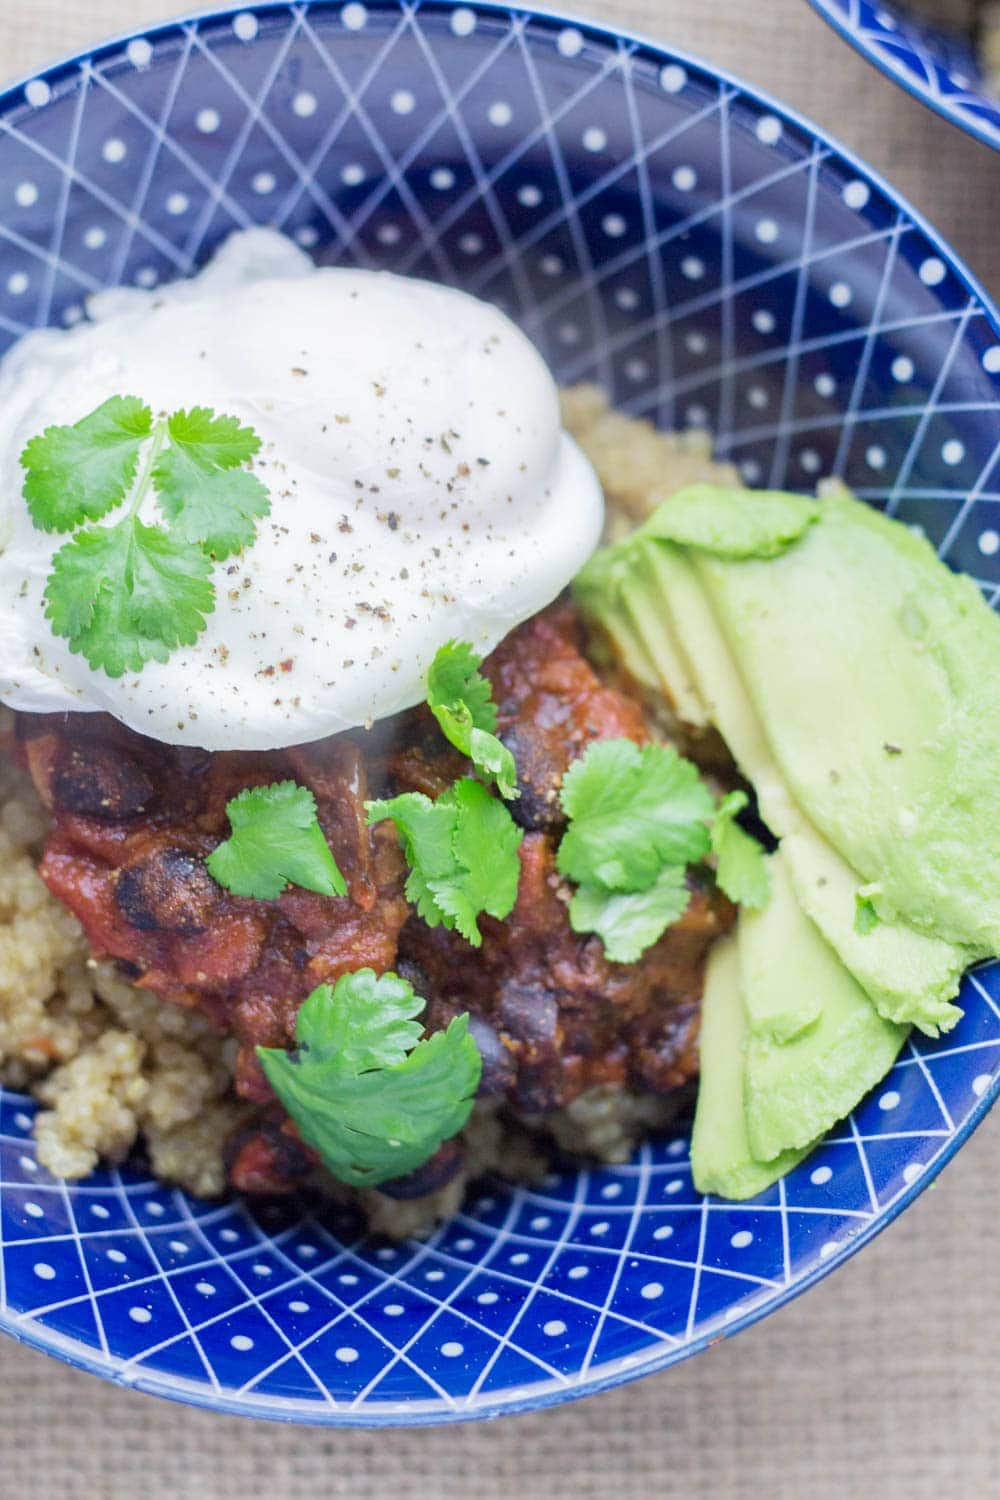 Huevos Rancheros Quinoa Breakfast Bowls. Try these huevos rancheros quinoa breakfast bowls for a fun and healthy change to your usual breakfast. I like mine topped with a poached egg for extra protein and loads of lime and coriander. #breakfast #quinoa #healthy #huevosrancheros #recipe